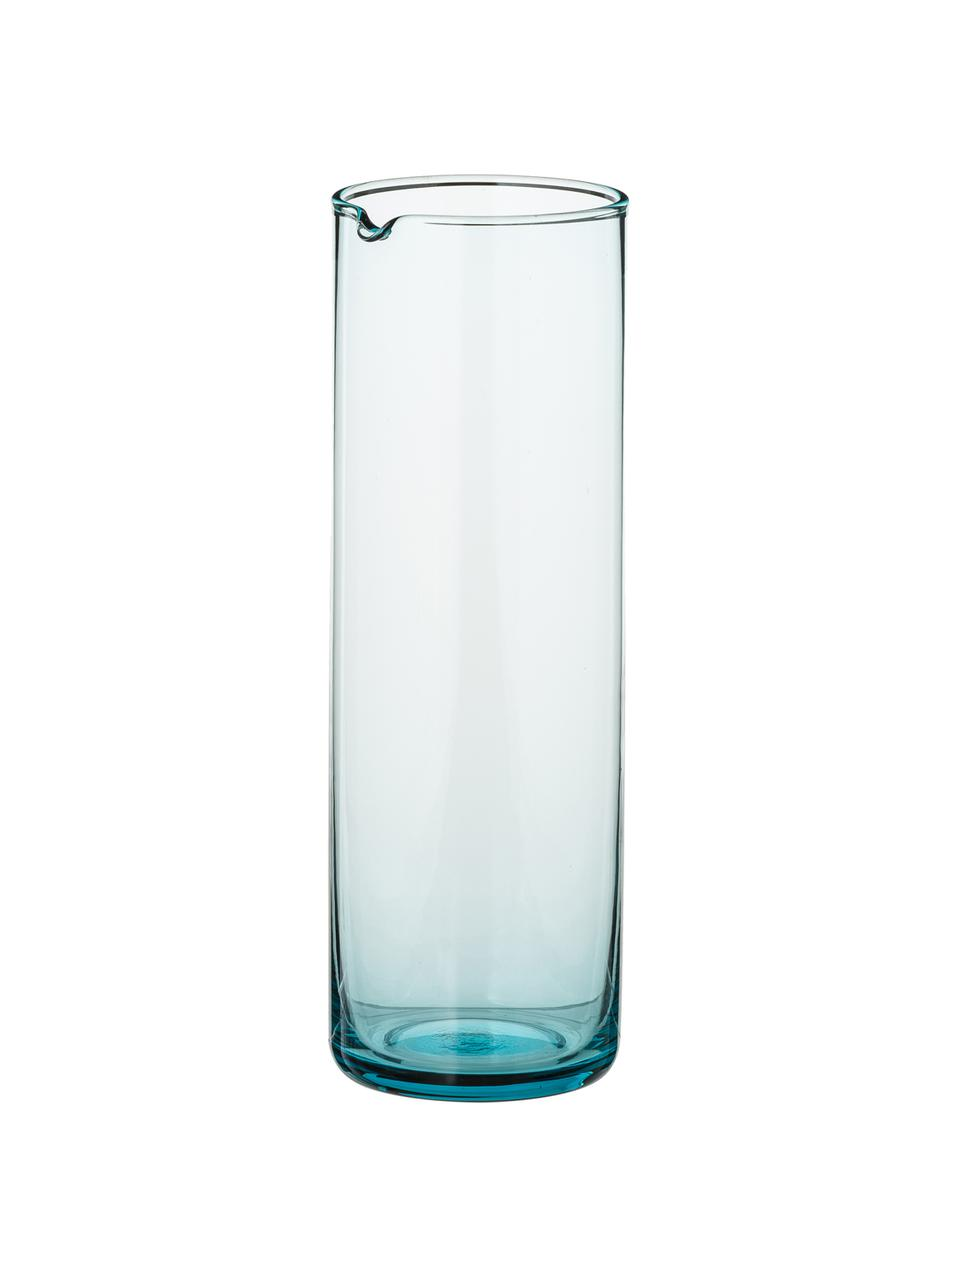 Glaskaraffe Bloom in Türkis, 1 L, Glas, Türkis, H 24 cm